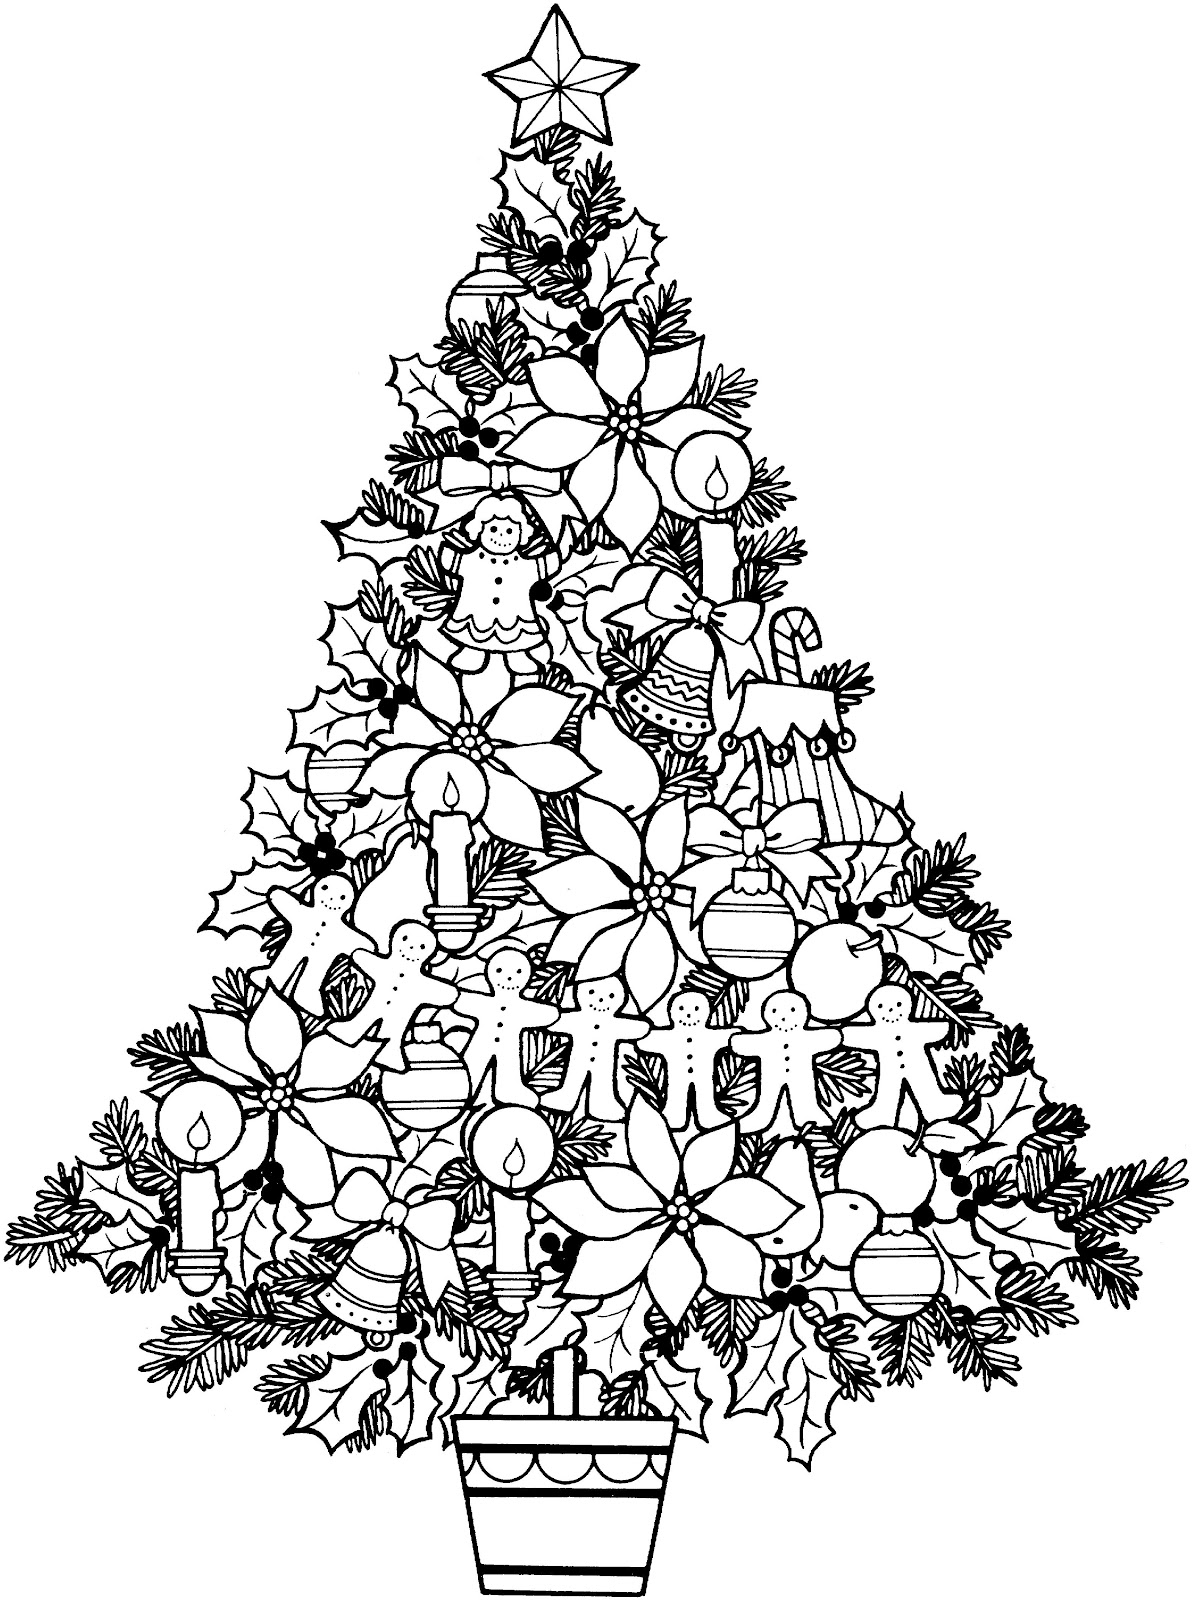 Christmas Star Black And White Clipart - Clipart Kid